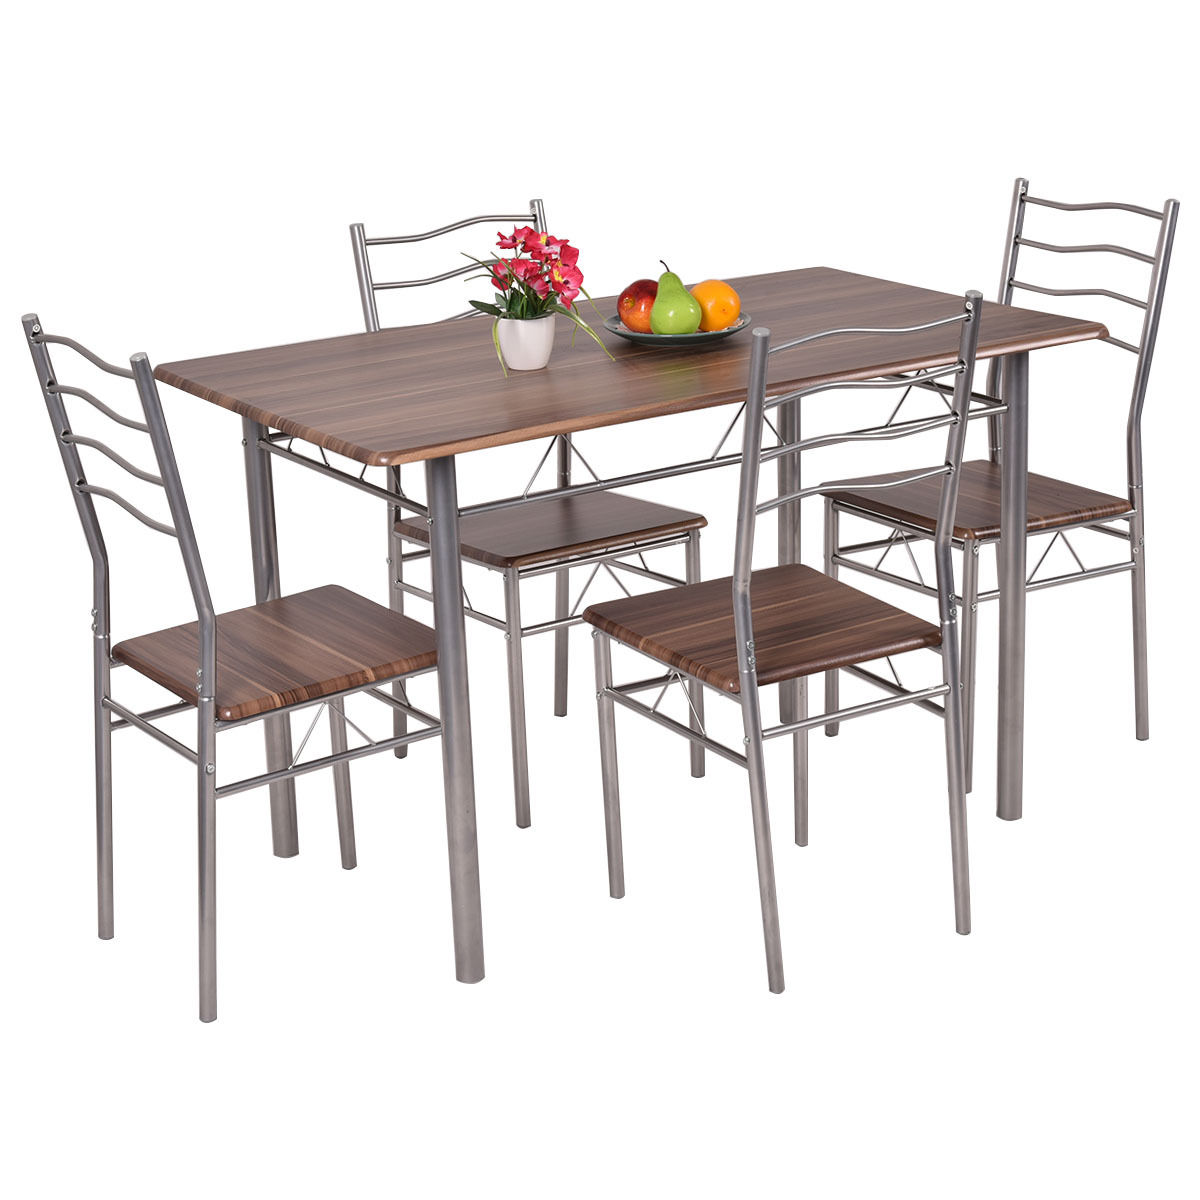 Mainstays 5 Piece Gl And Metal Dining Set 42 Round Tabletop